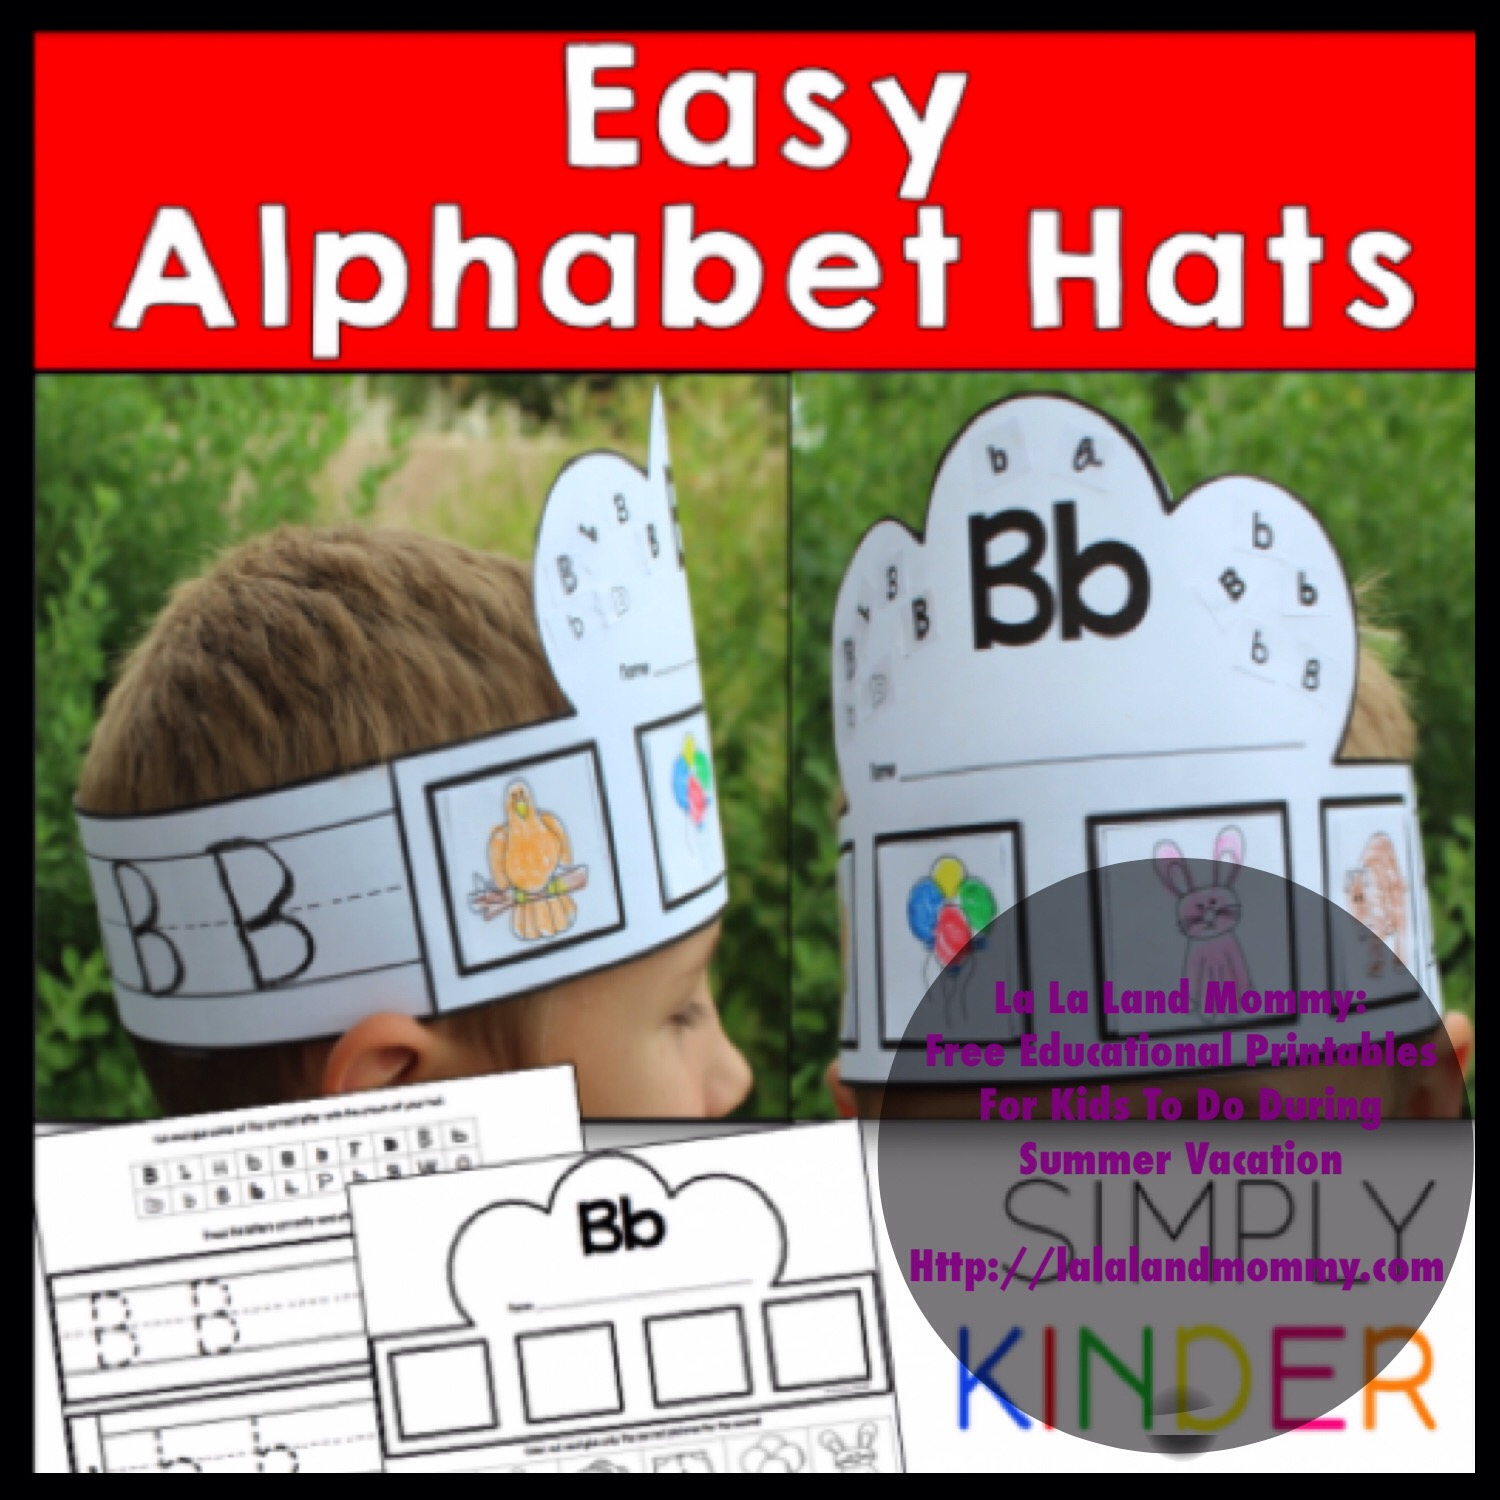 Free Educational Printables For Kids To Do During Summer Vacation